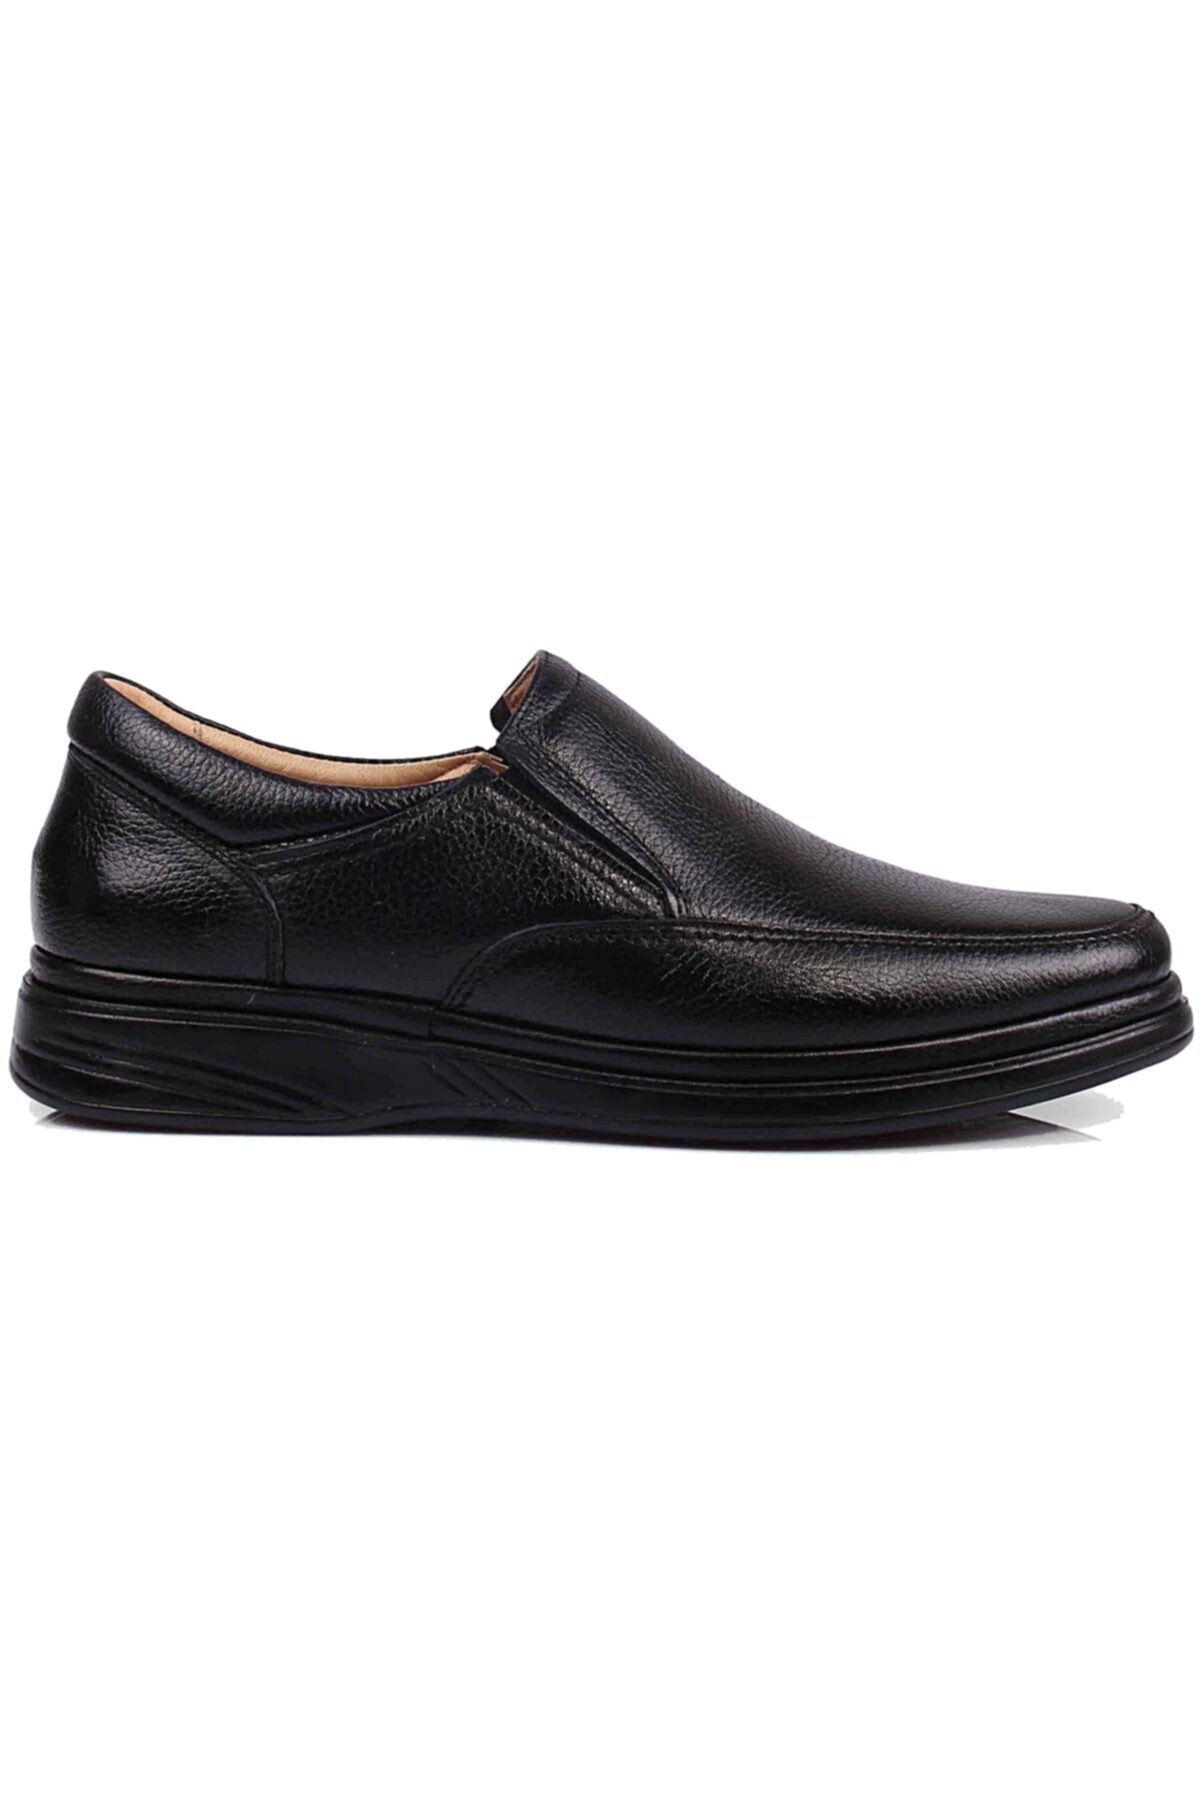 Orthopedic Indoor Outdoor Complete Leather Extra Comfortable Large Size Casual Men S Shoes 700sk (40-48)